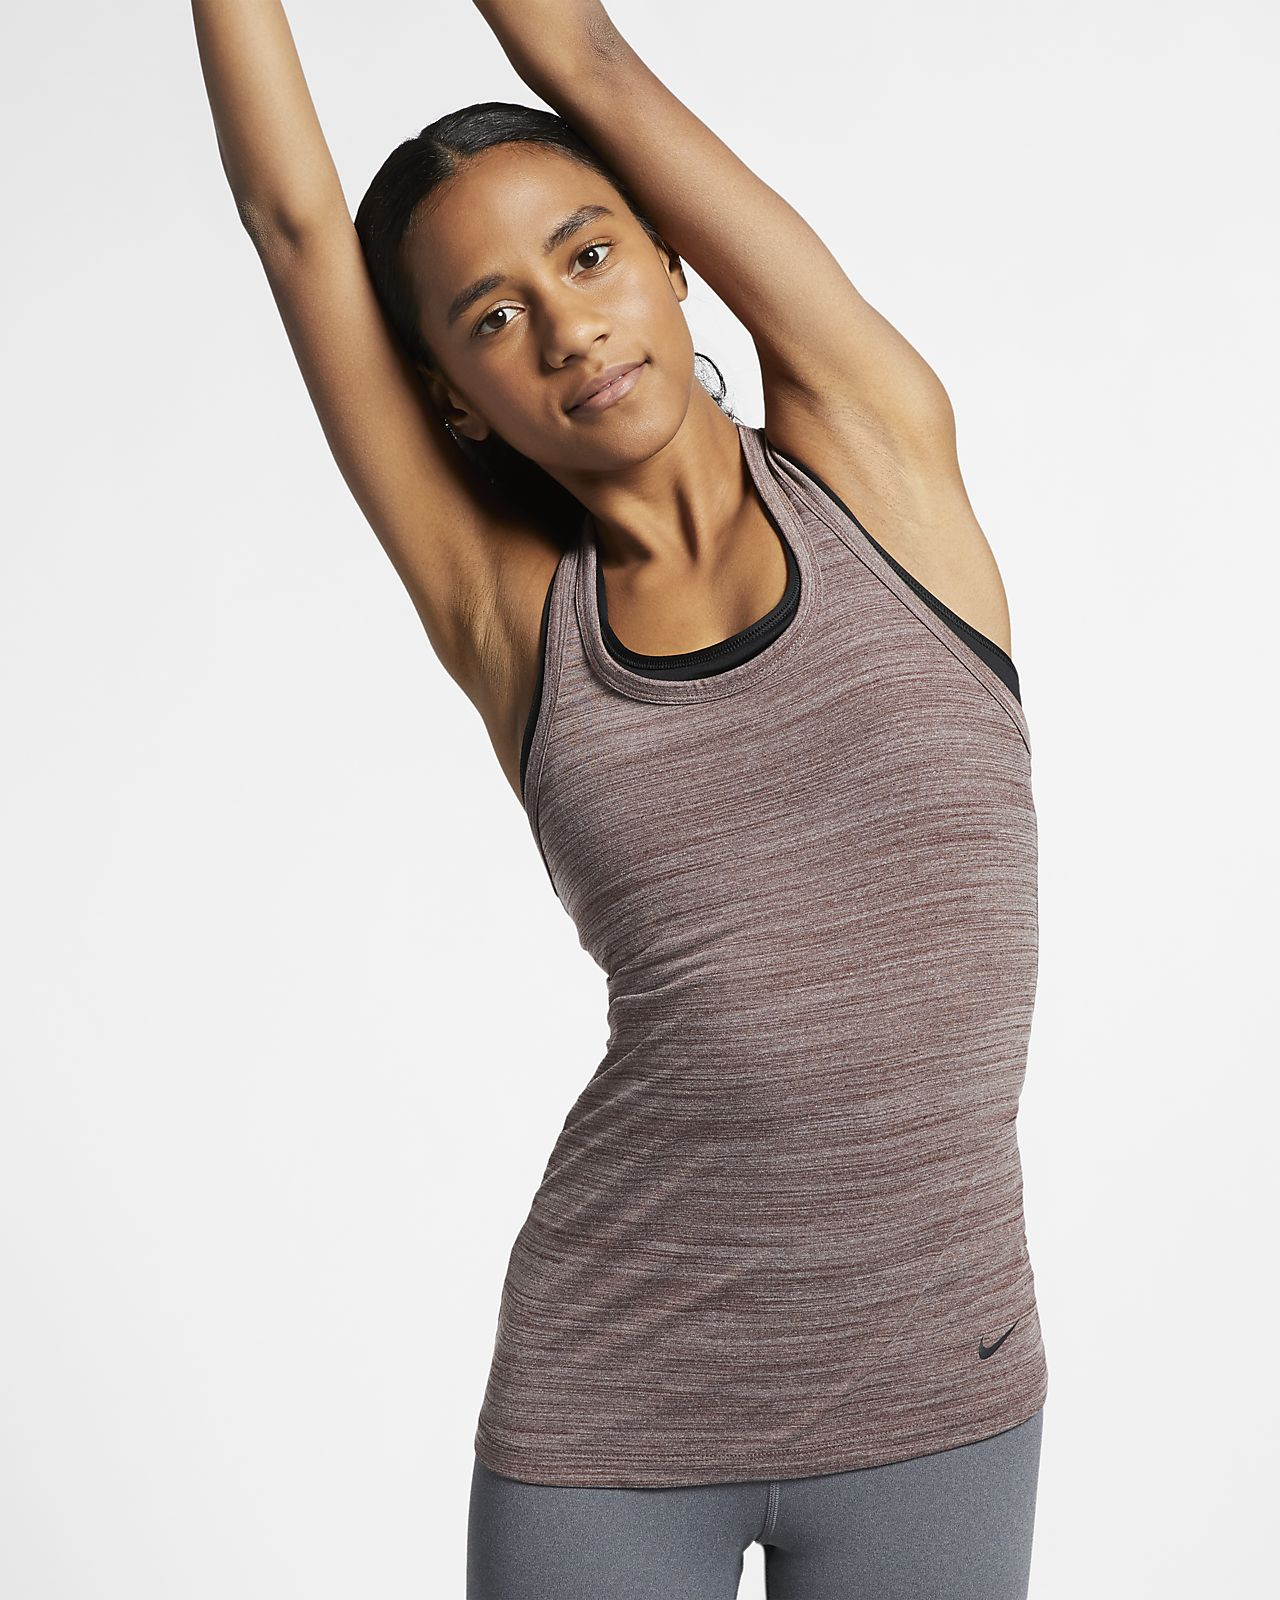 Nike Women's Yoga Training Tank